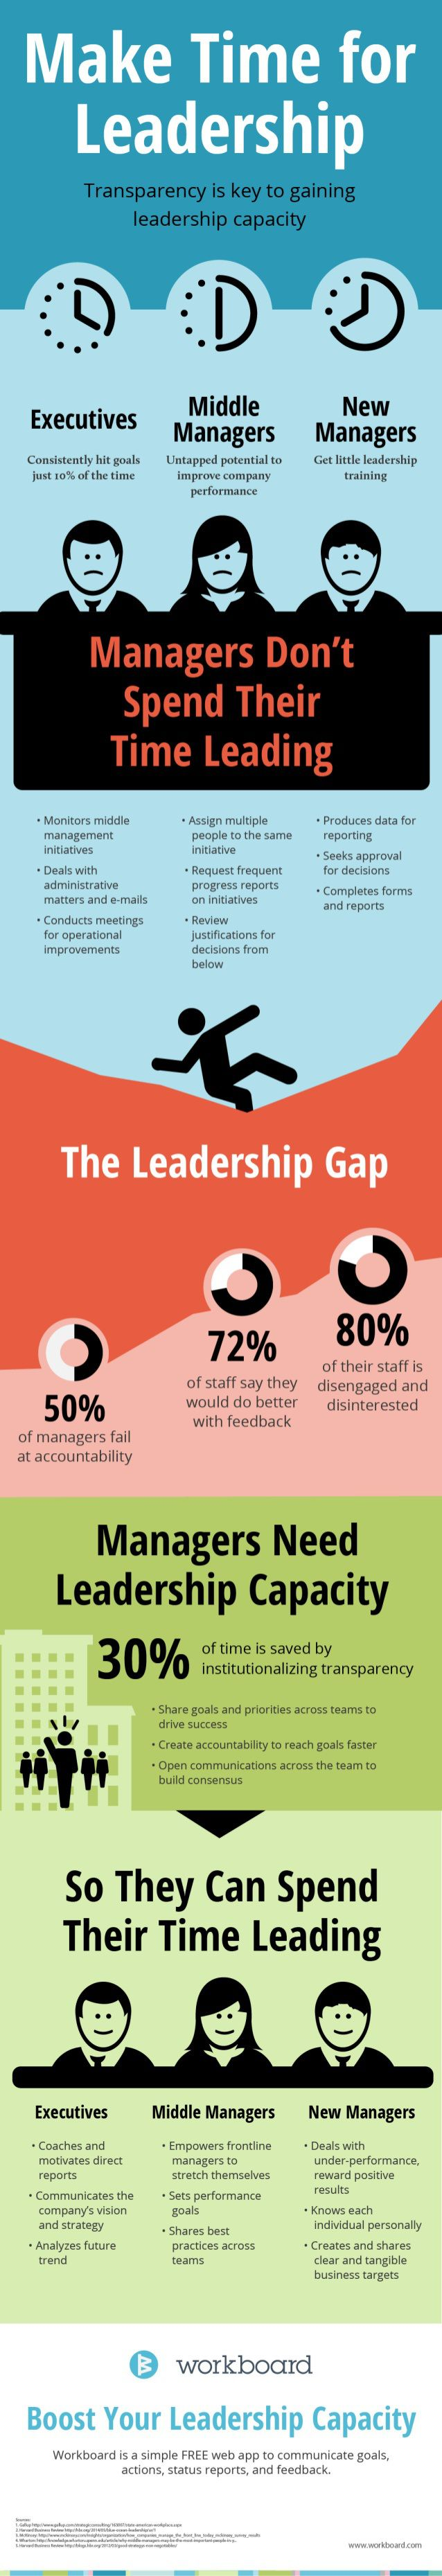 Make time for leadership #infographic